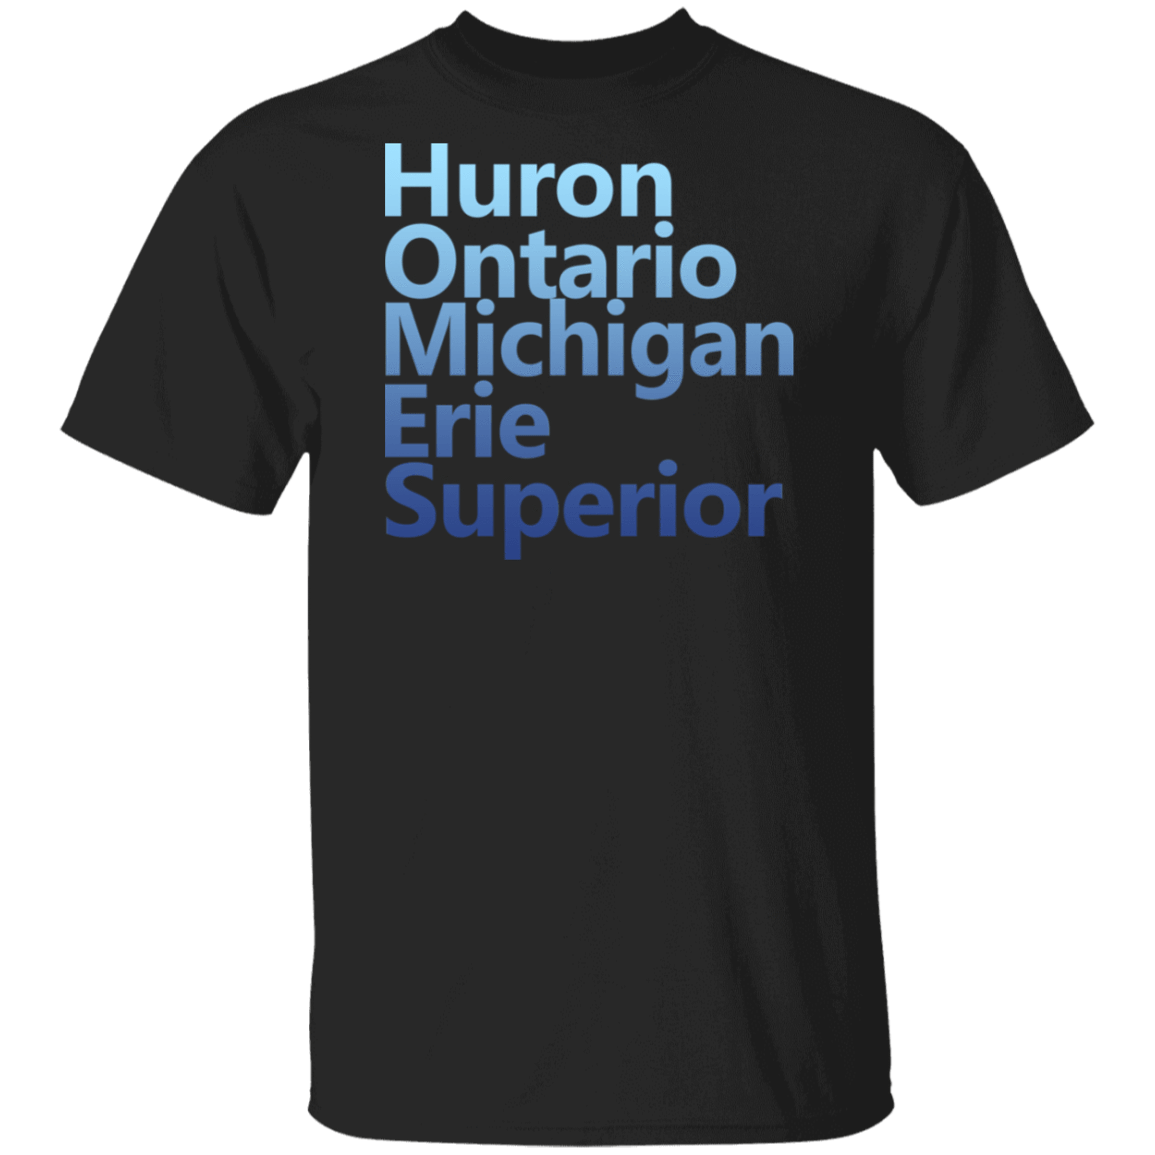 Huron Ontario Michigan Erie Superior Homes T-Shirts, Hoodies, Tank 1049-9953-80434635-48144 - Tee Ript